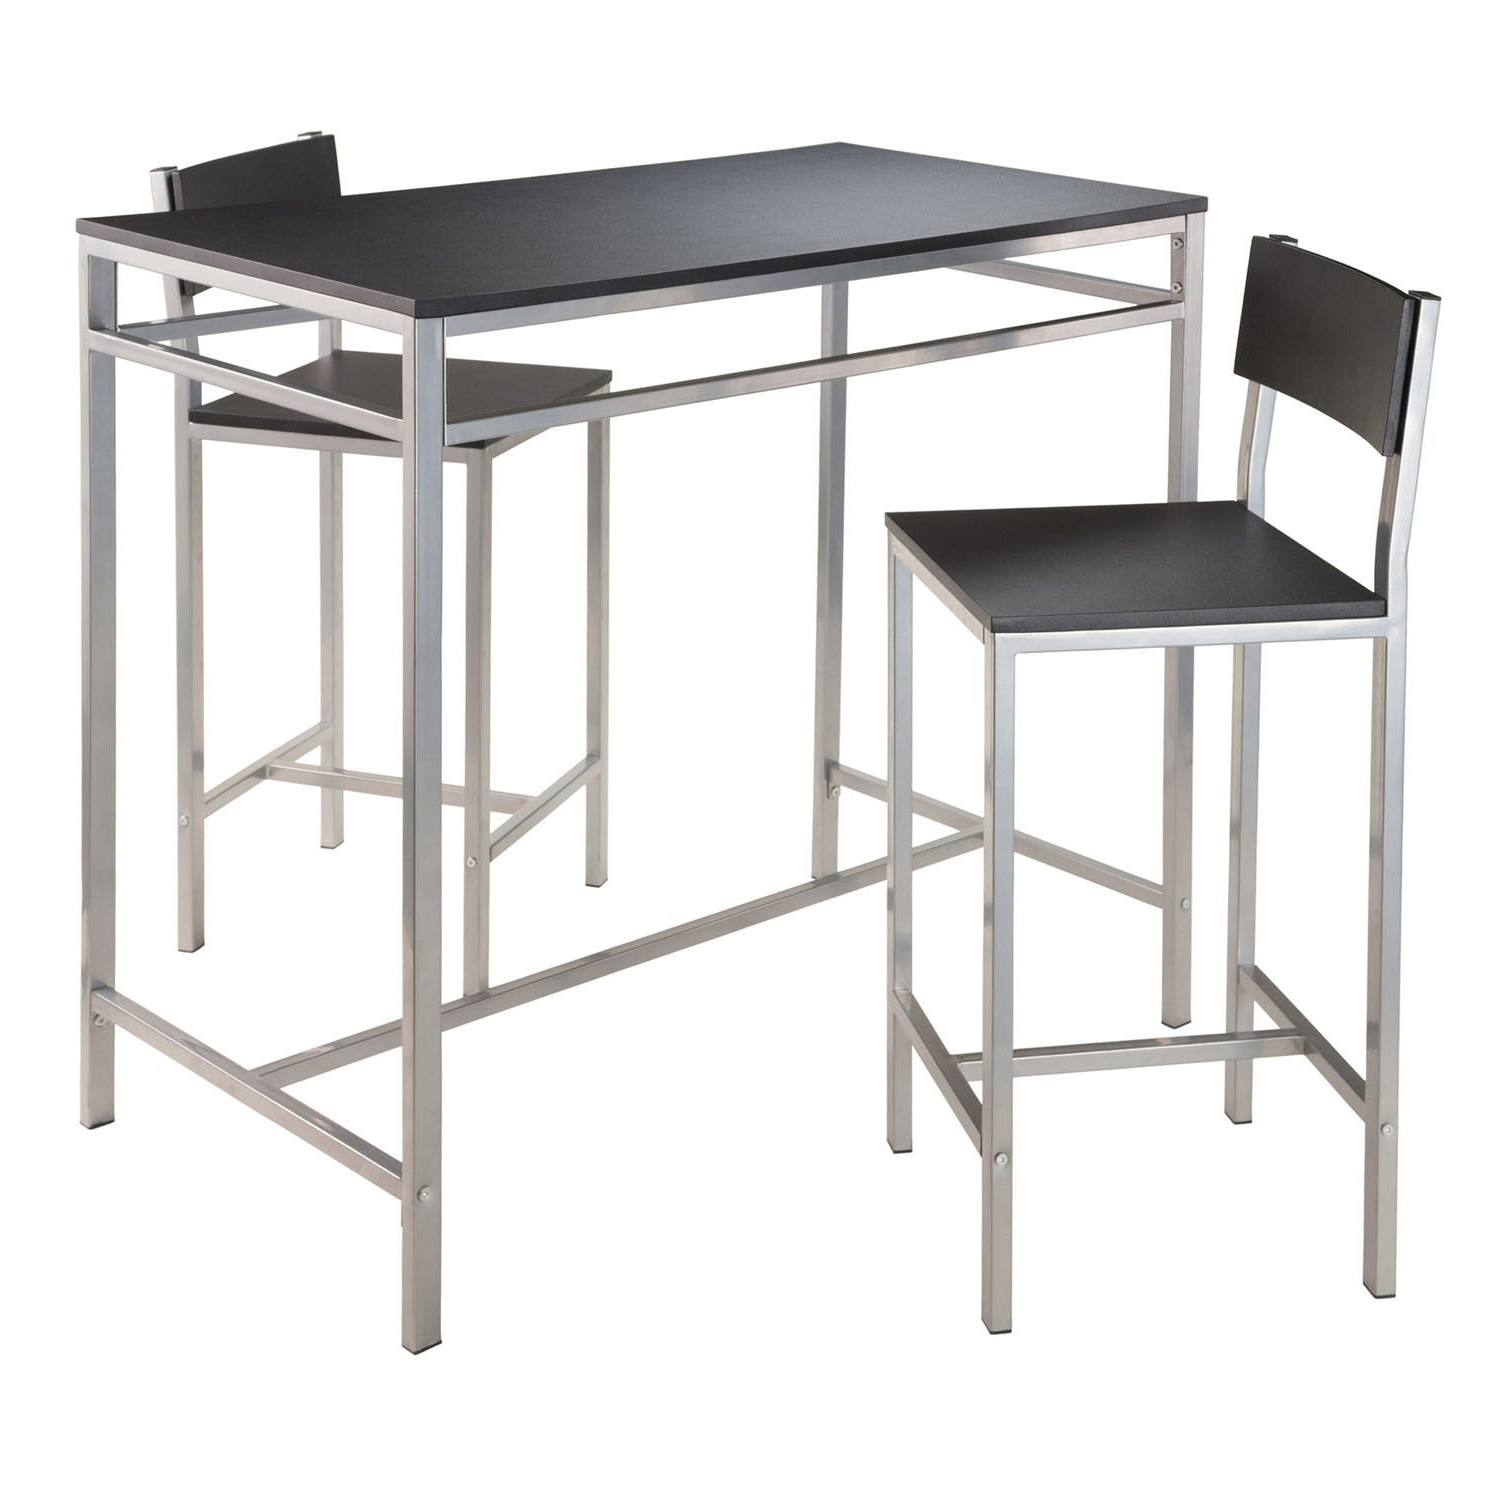 Shop Winsome Hanley 3 Piece Pub Height Dining Table Set With 2 In Preferred Winsome 3 Piece Counter Height Dining Sets (View 11 of 25)